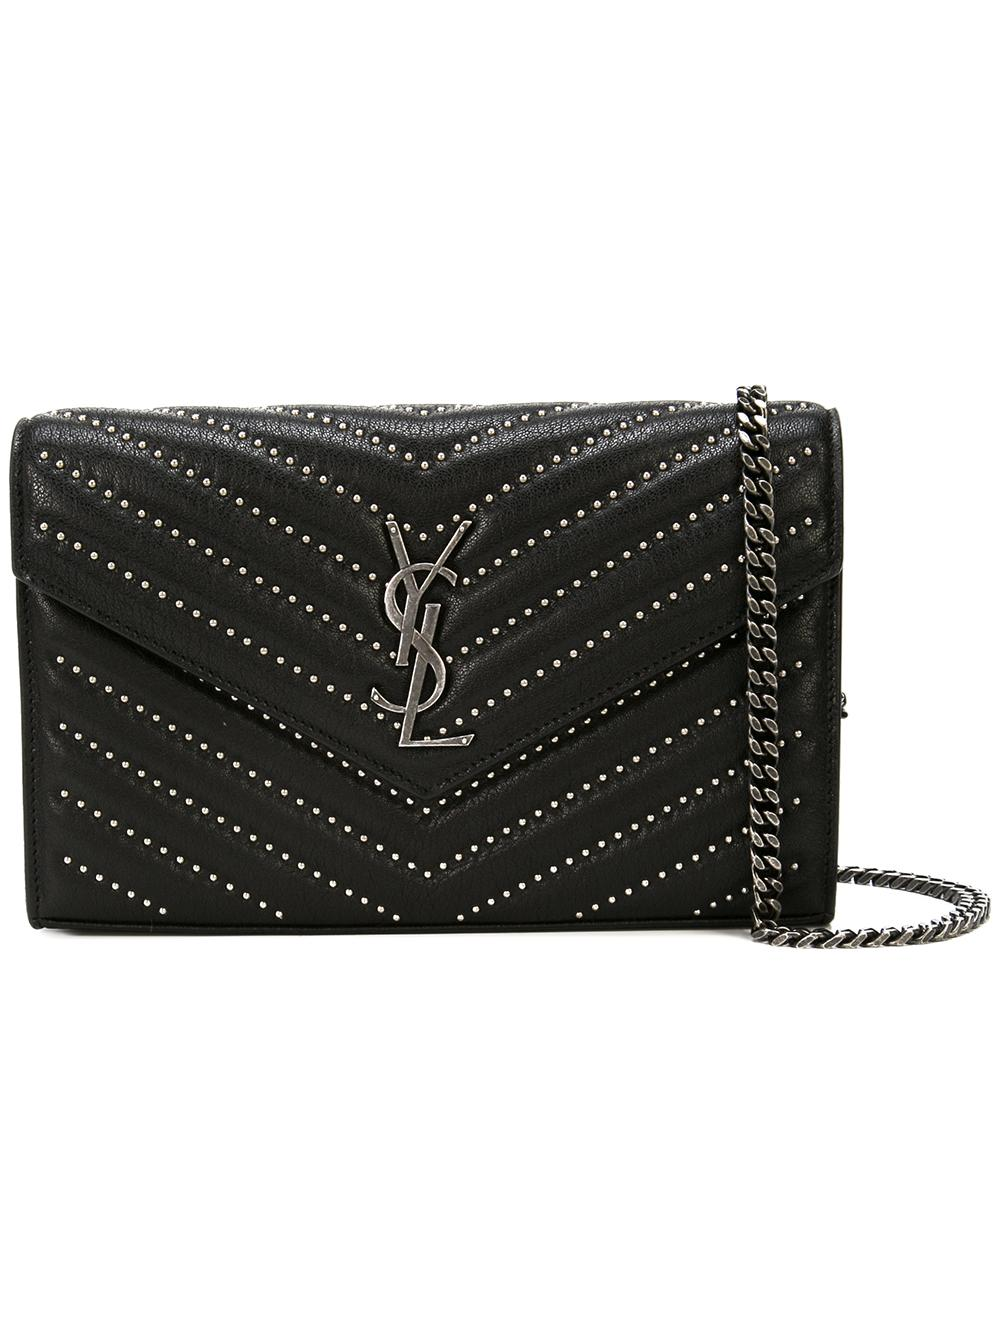 Small Monogram Kate Chain Bag With Tassel Item # 532889-CGXT2